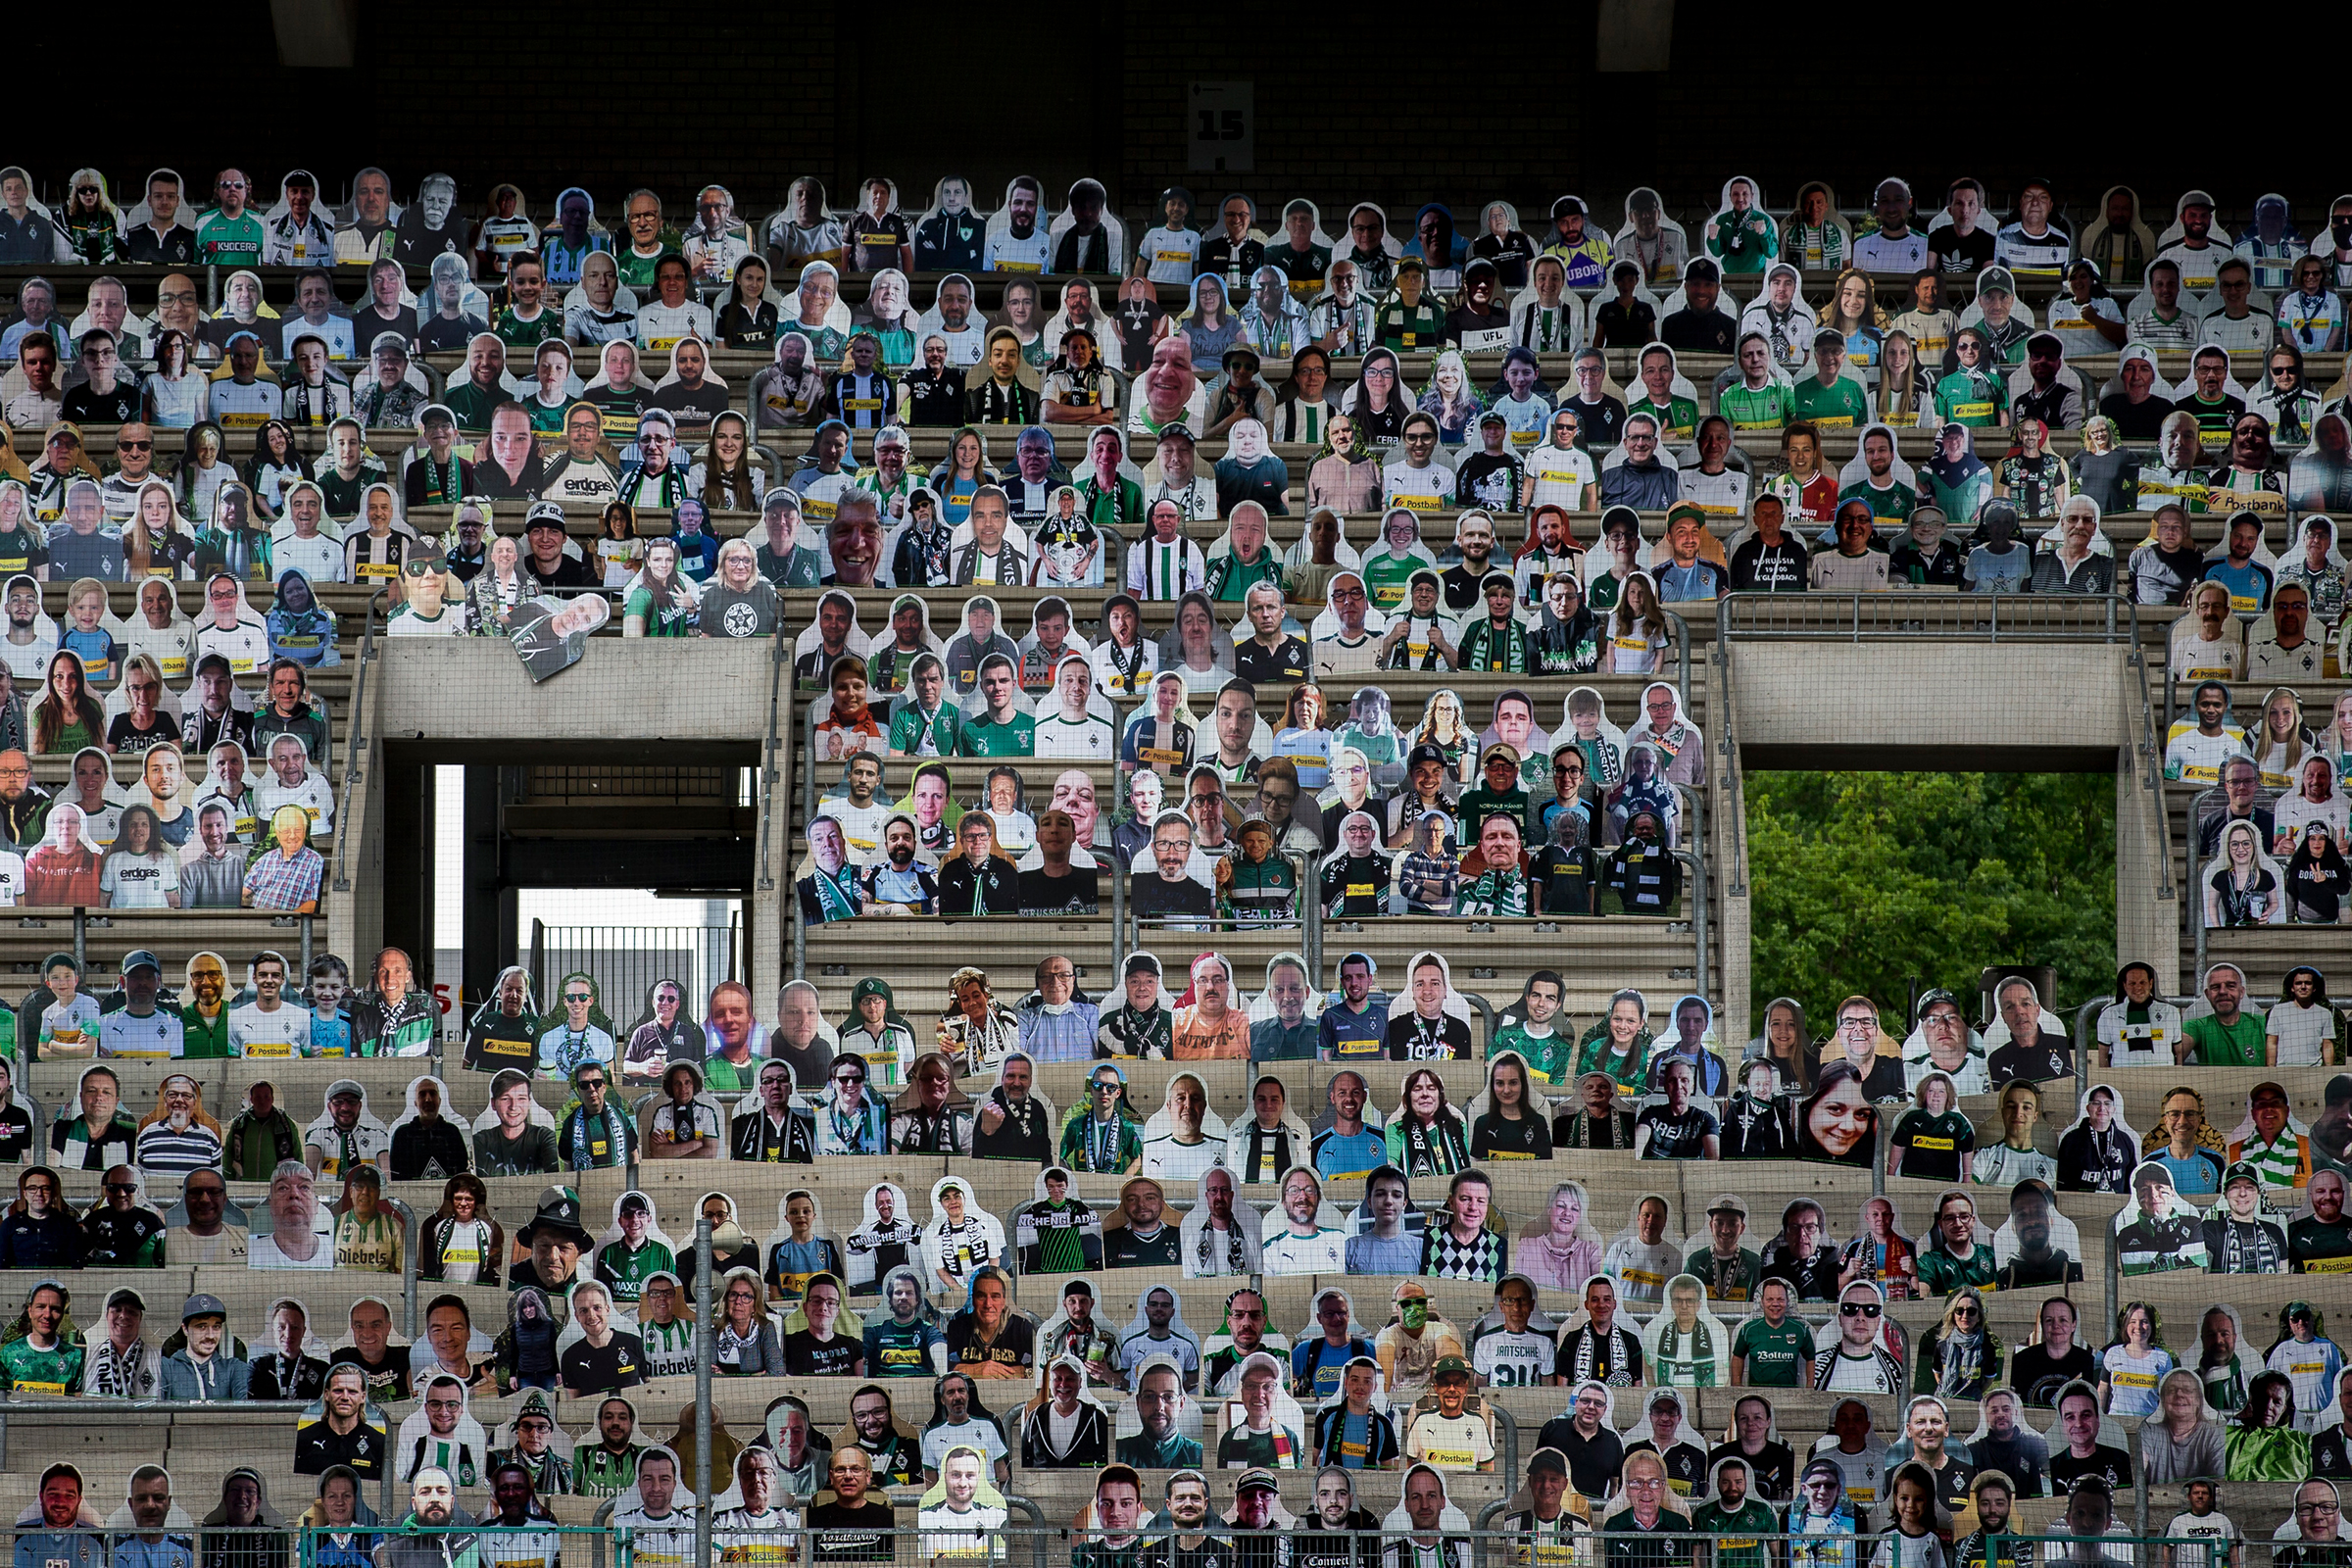 Pictures of fans, players, coaches and staff of Bundesliga club Borussia Mönchengladbach are seen at Borussia-Park in Mönchengladbach, Germany, on April 28, 2020.